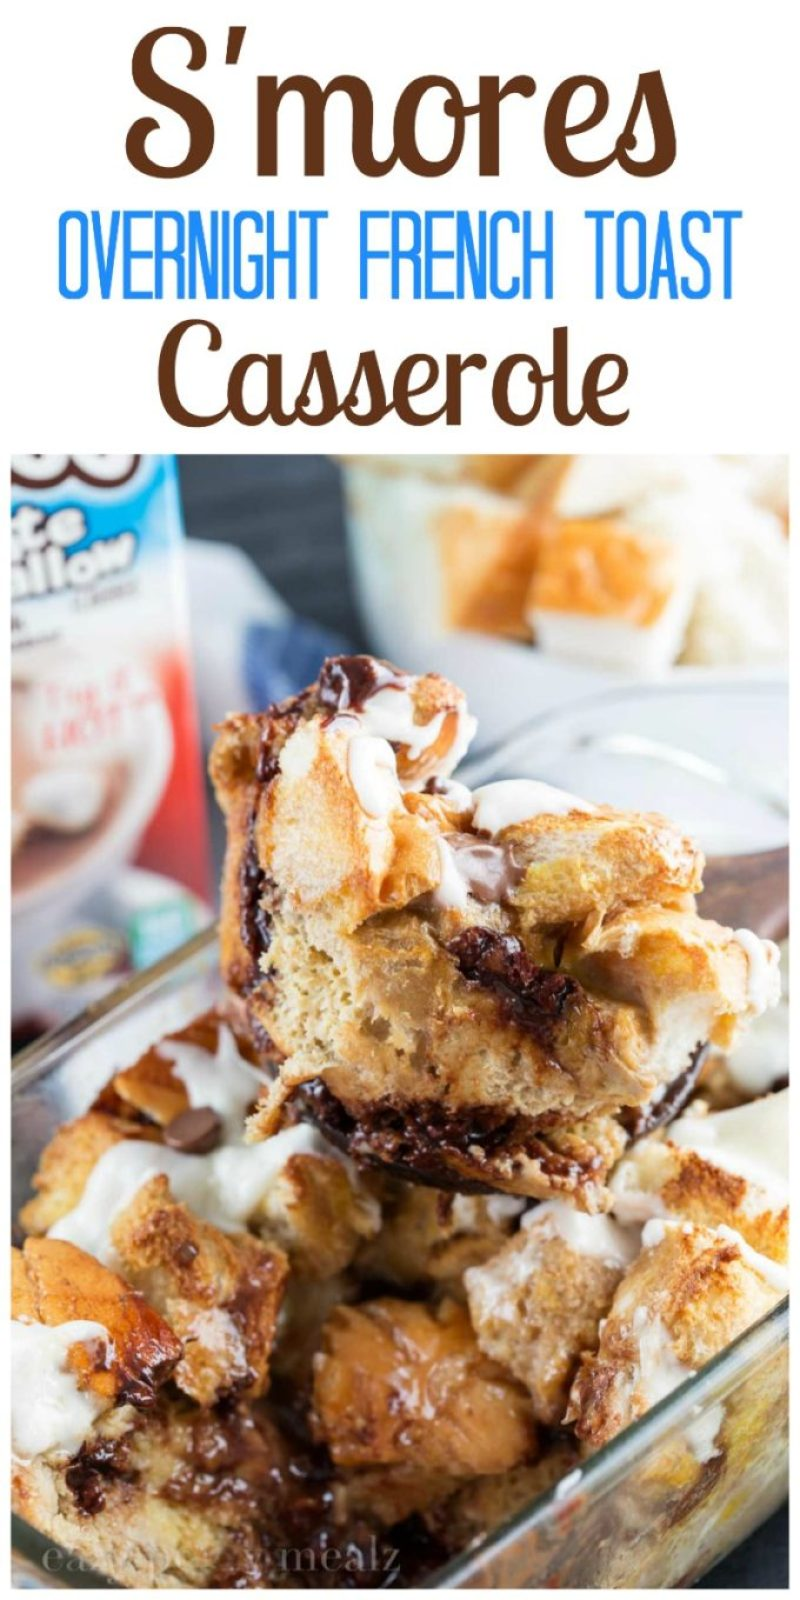 Smores overnight french toast casserole